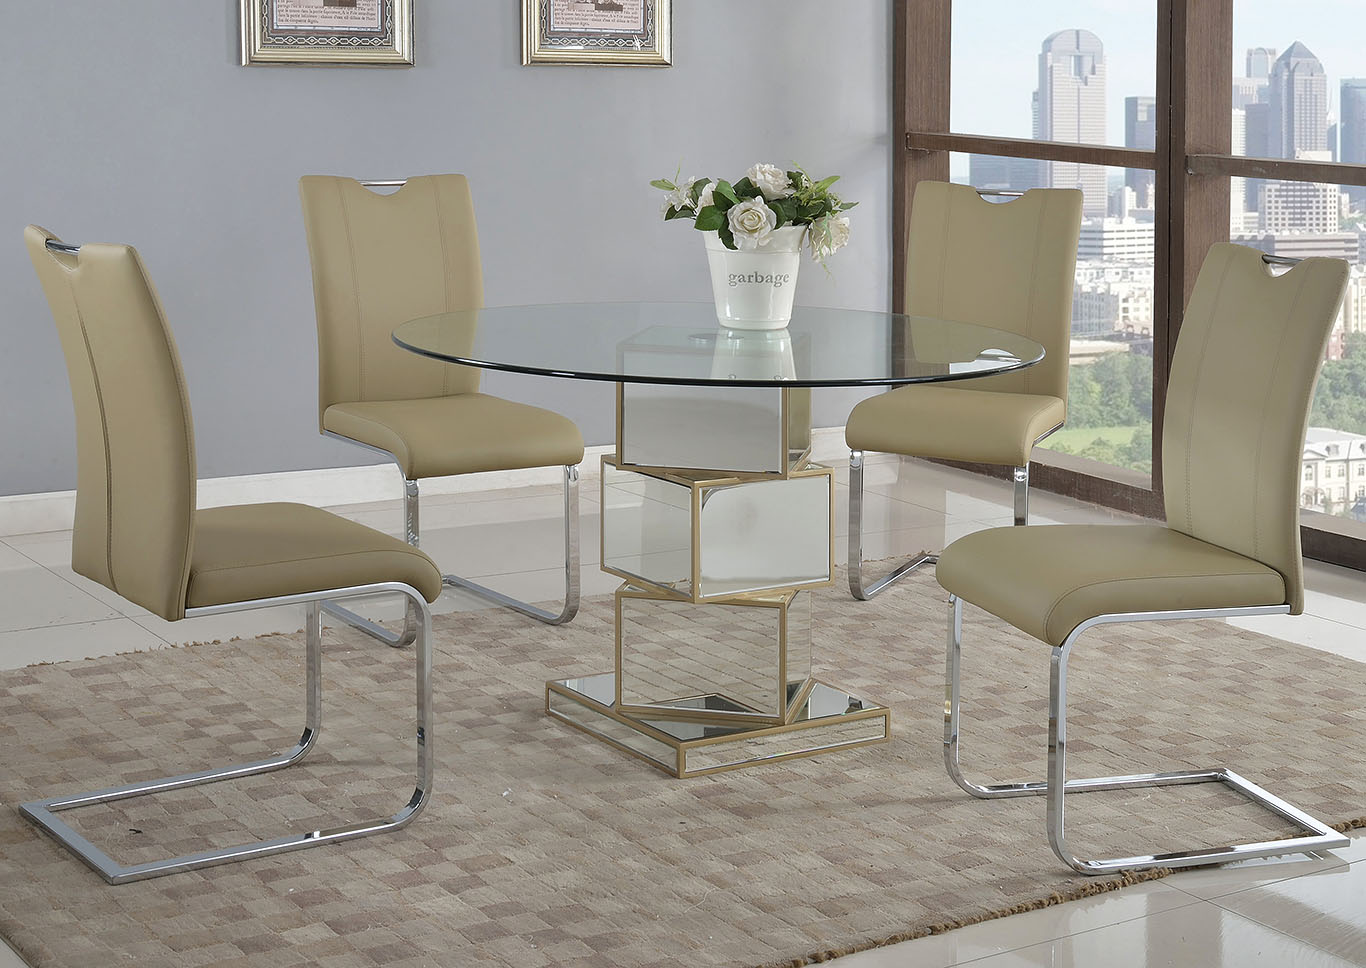 Marlene-Melissa Taupe Dining Table w/4 Side Chairs,Chintaly Imports